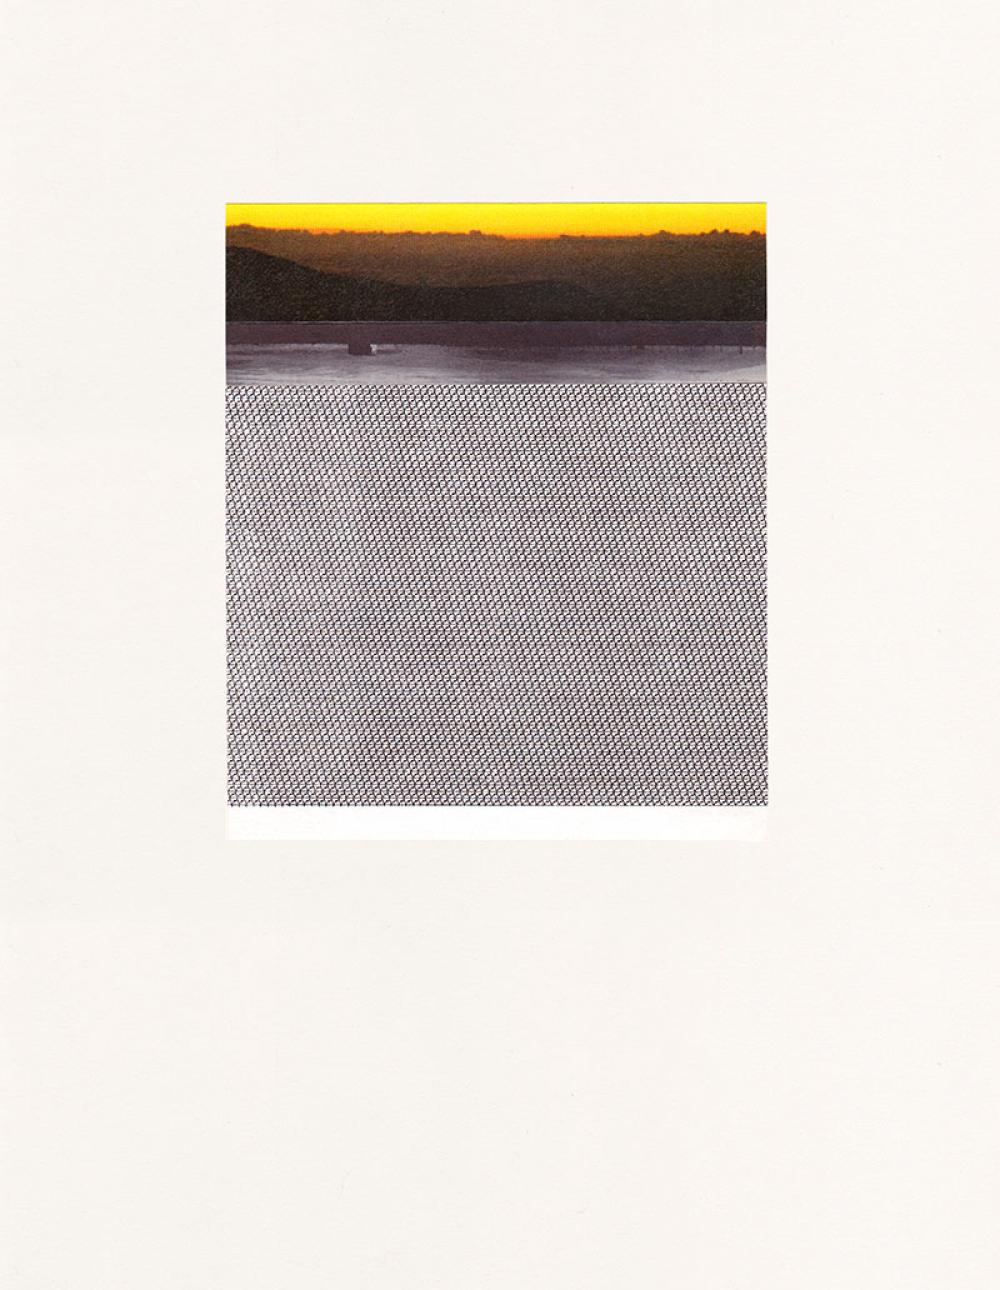 Bethany Johnson We Live on a Planet is illustrated here with a landscape that is created through ink and paper clippings The piece is demonstrating a bright yellow background that is slowly dissolving into a more stark image